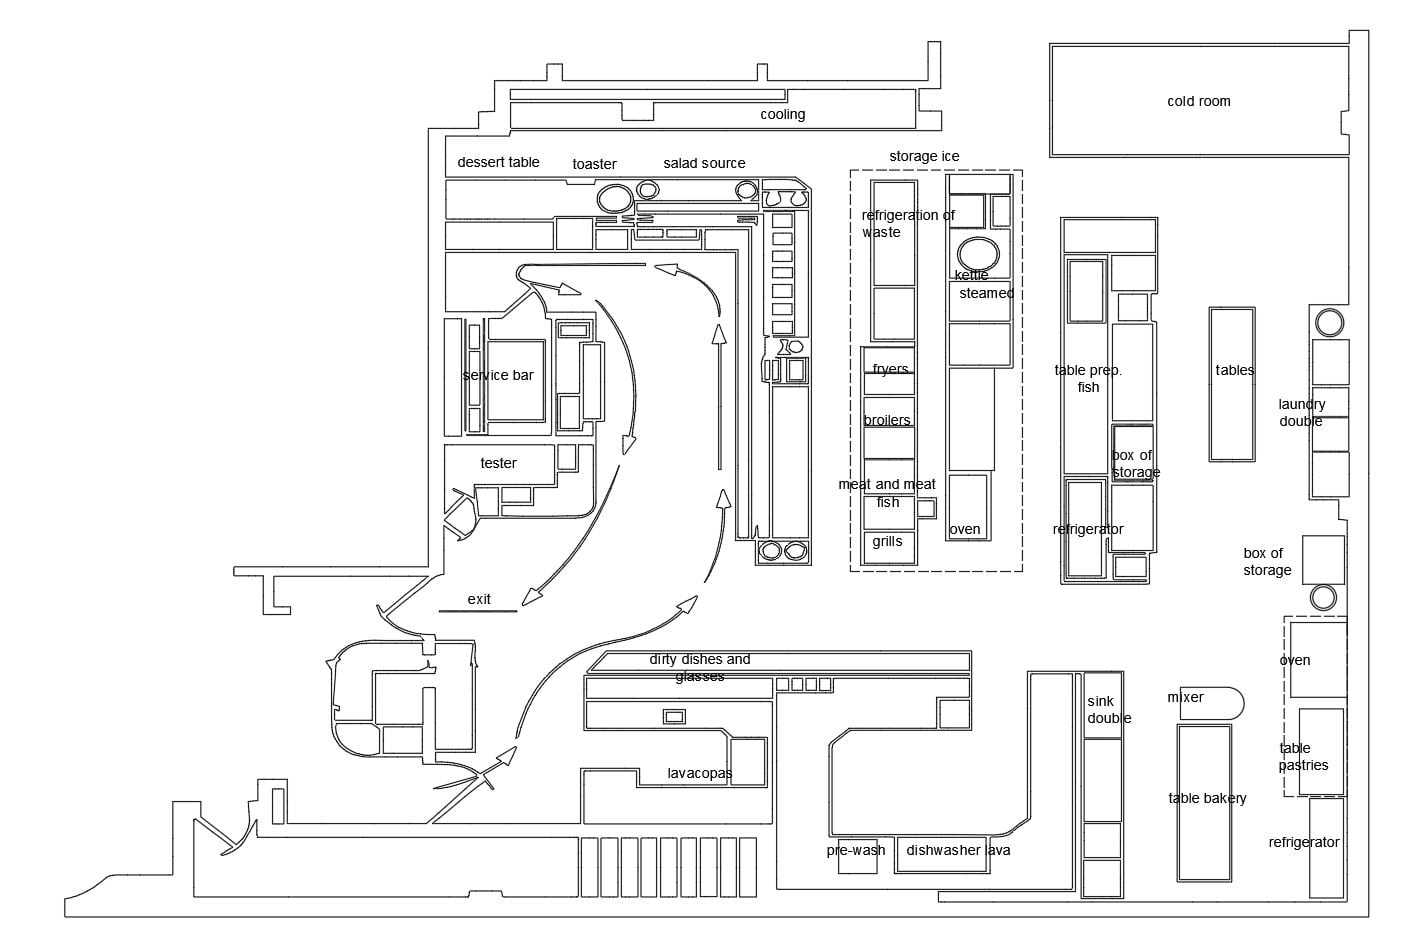 Commercial Kitchen Layout And Design, Explained With Floor